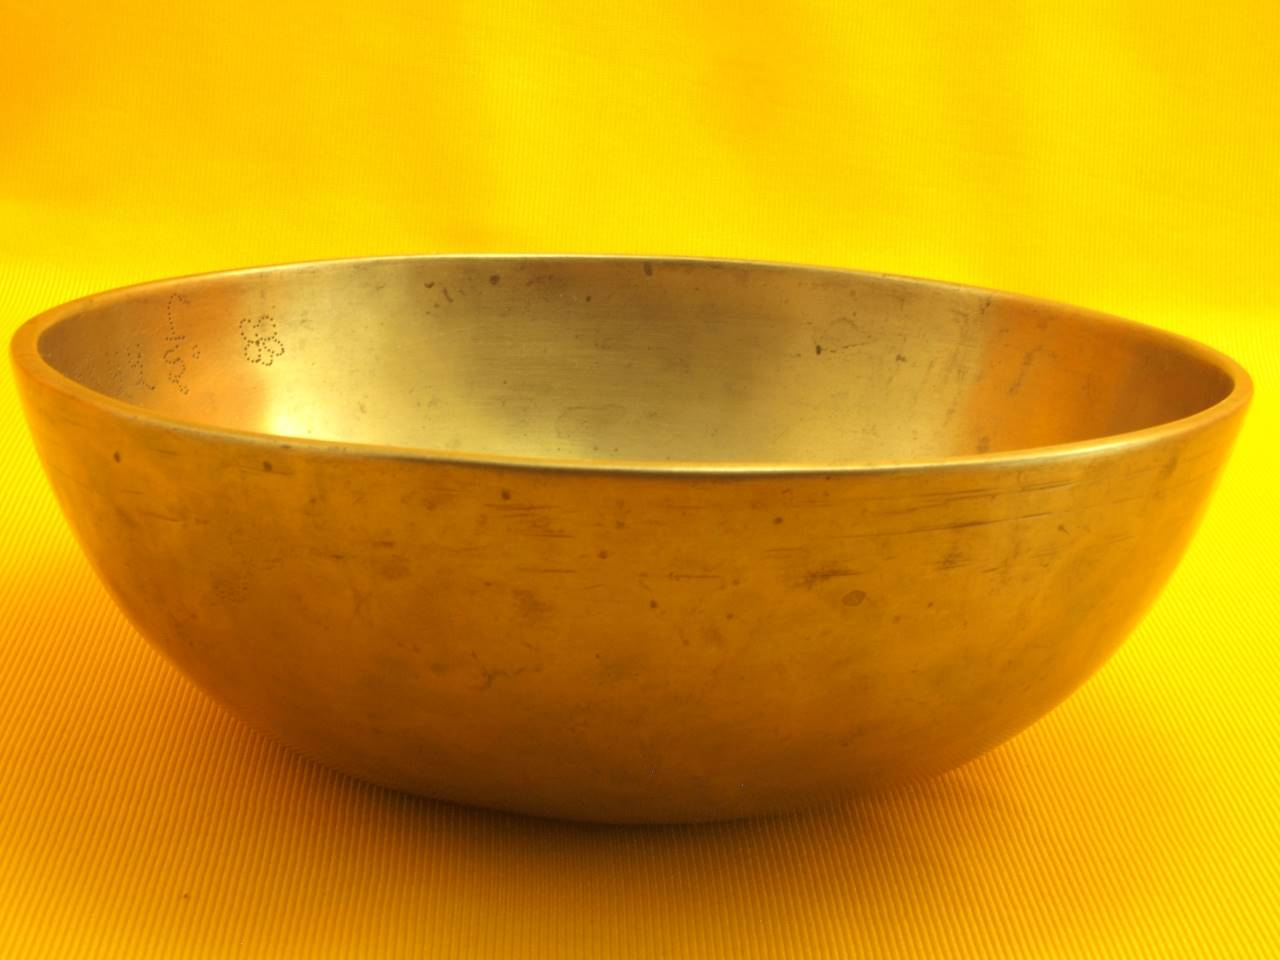 Antique Manipuri Singing Bowl with Rare Date Inscription - 1865